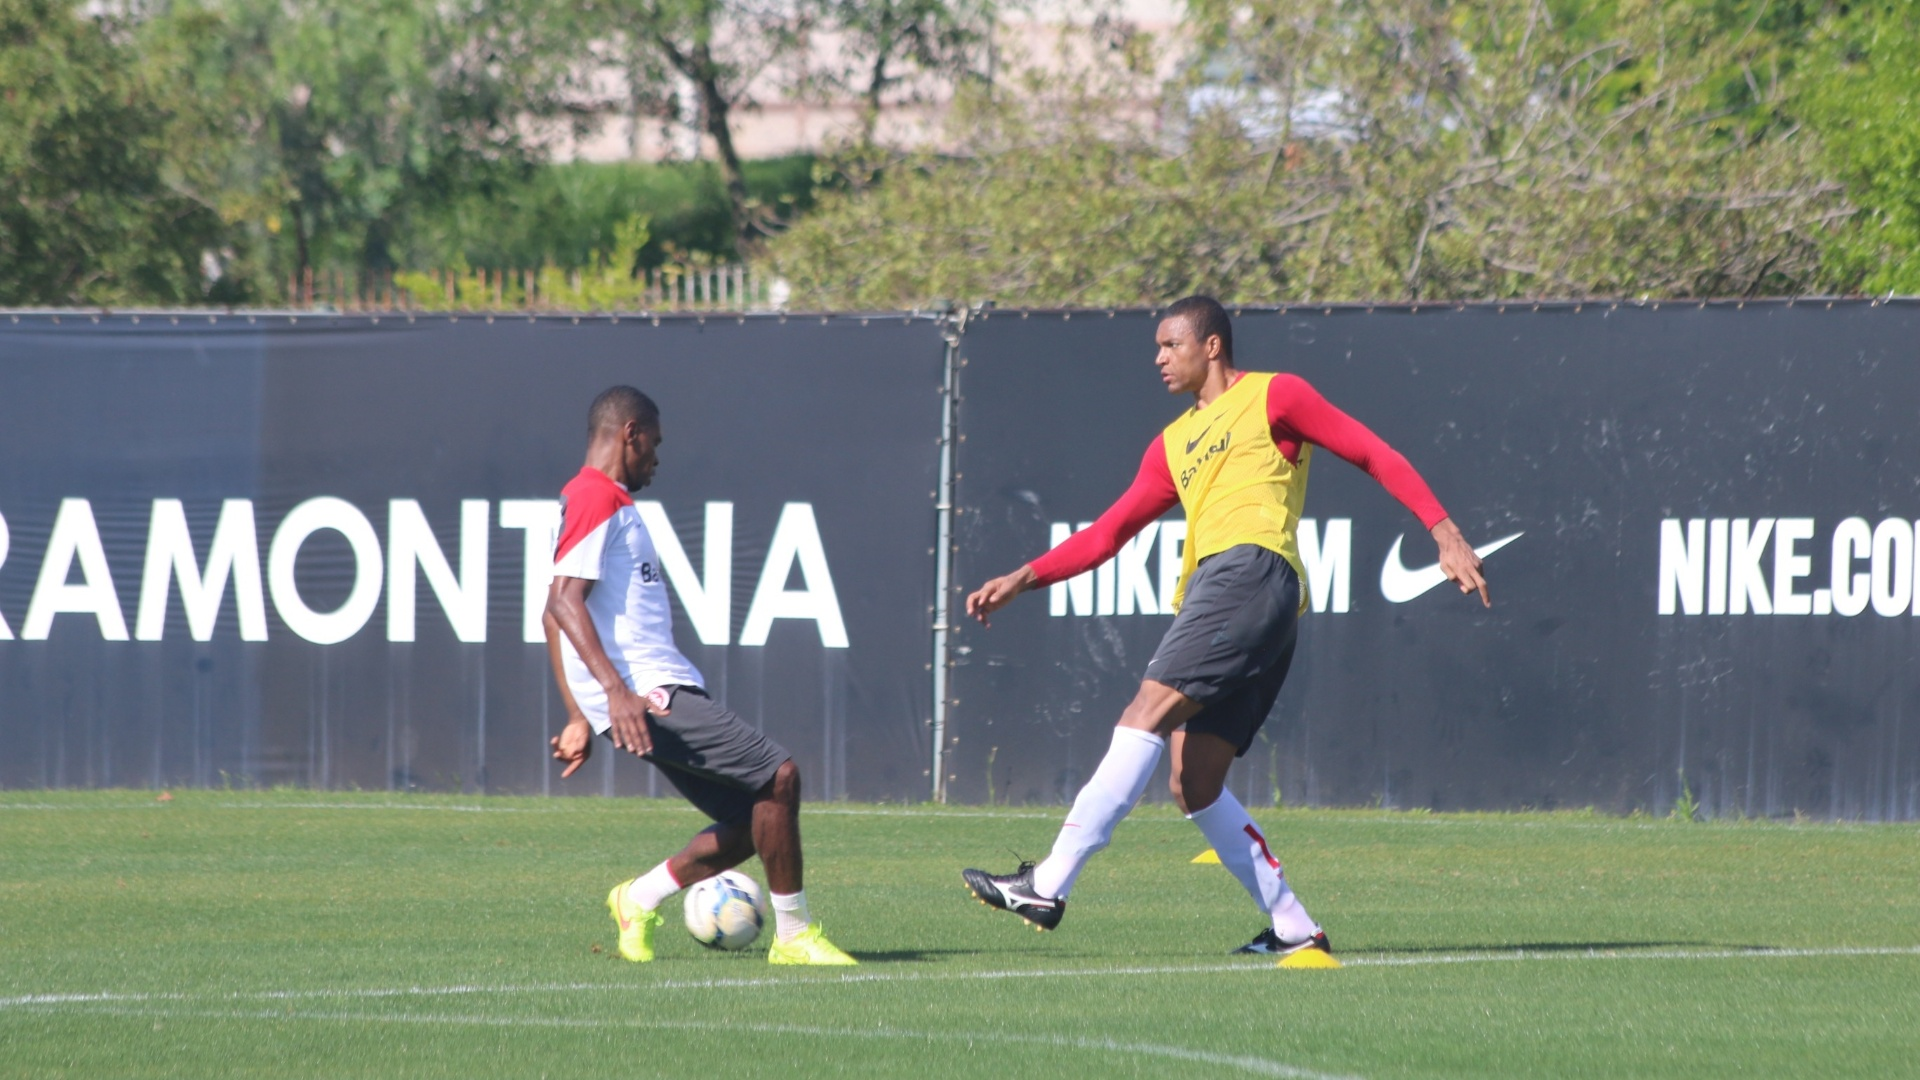 08.out.2014 - Dida treina como centroavante em recreativo do Inter antes de jogo com Chapecoense